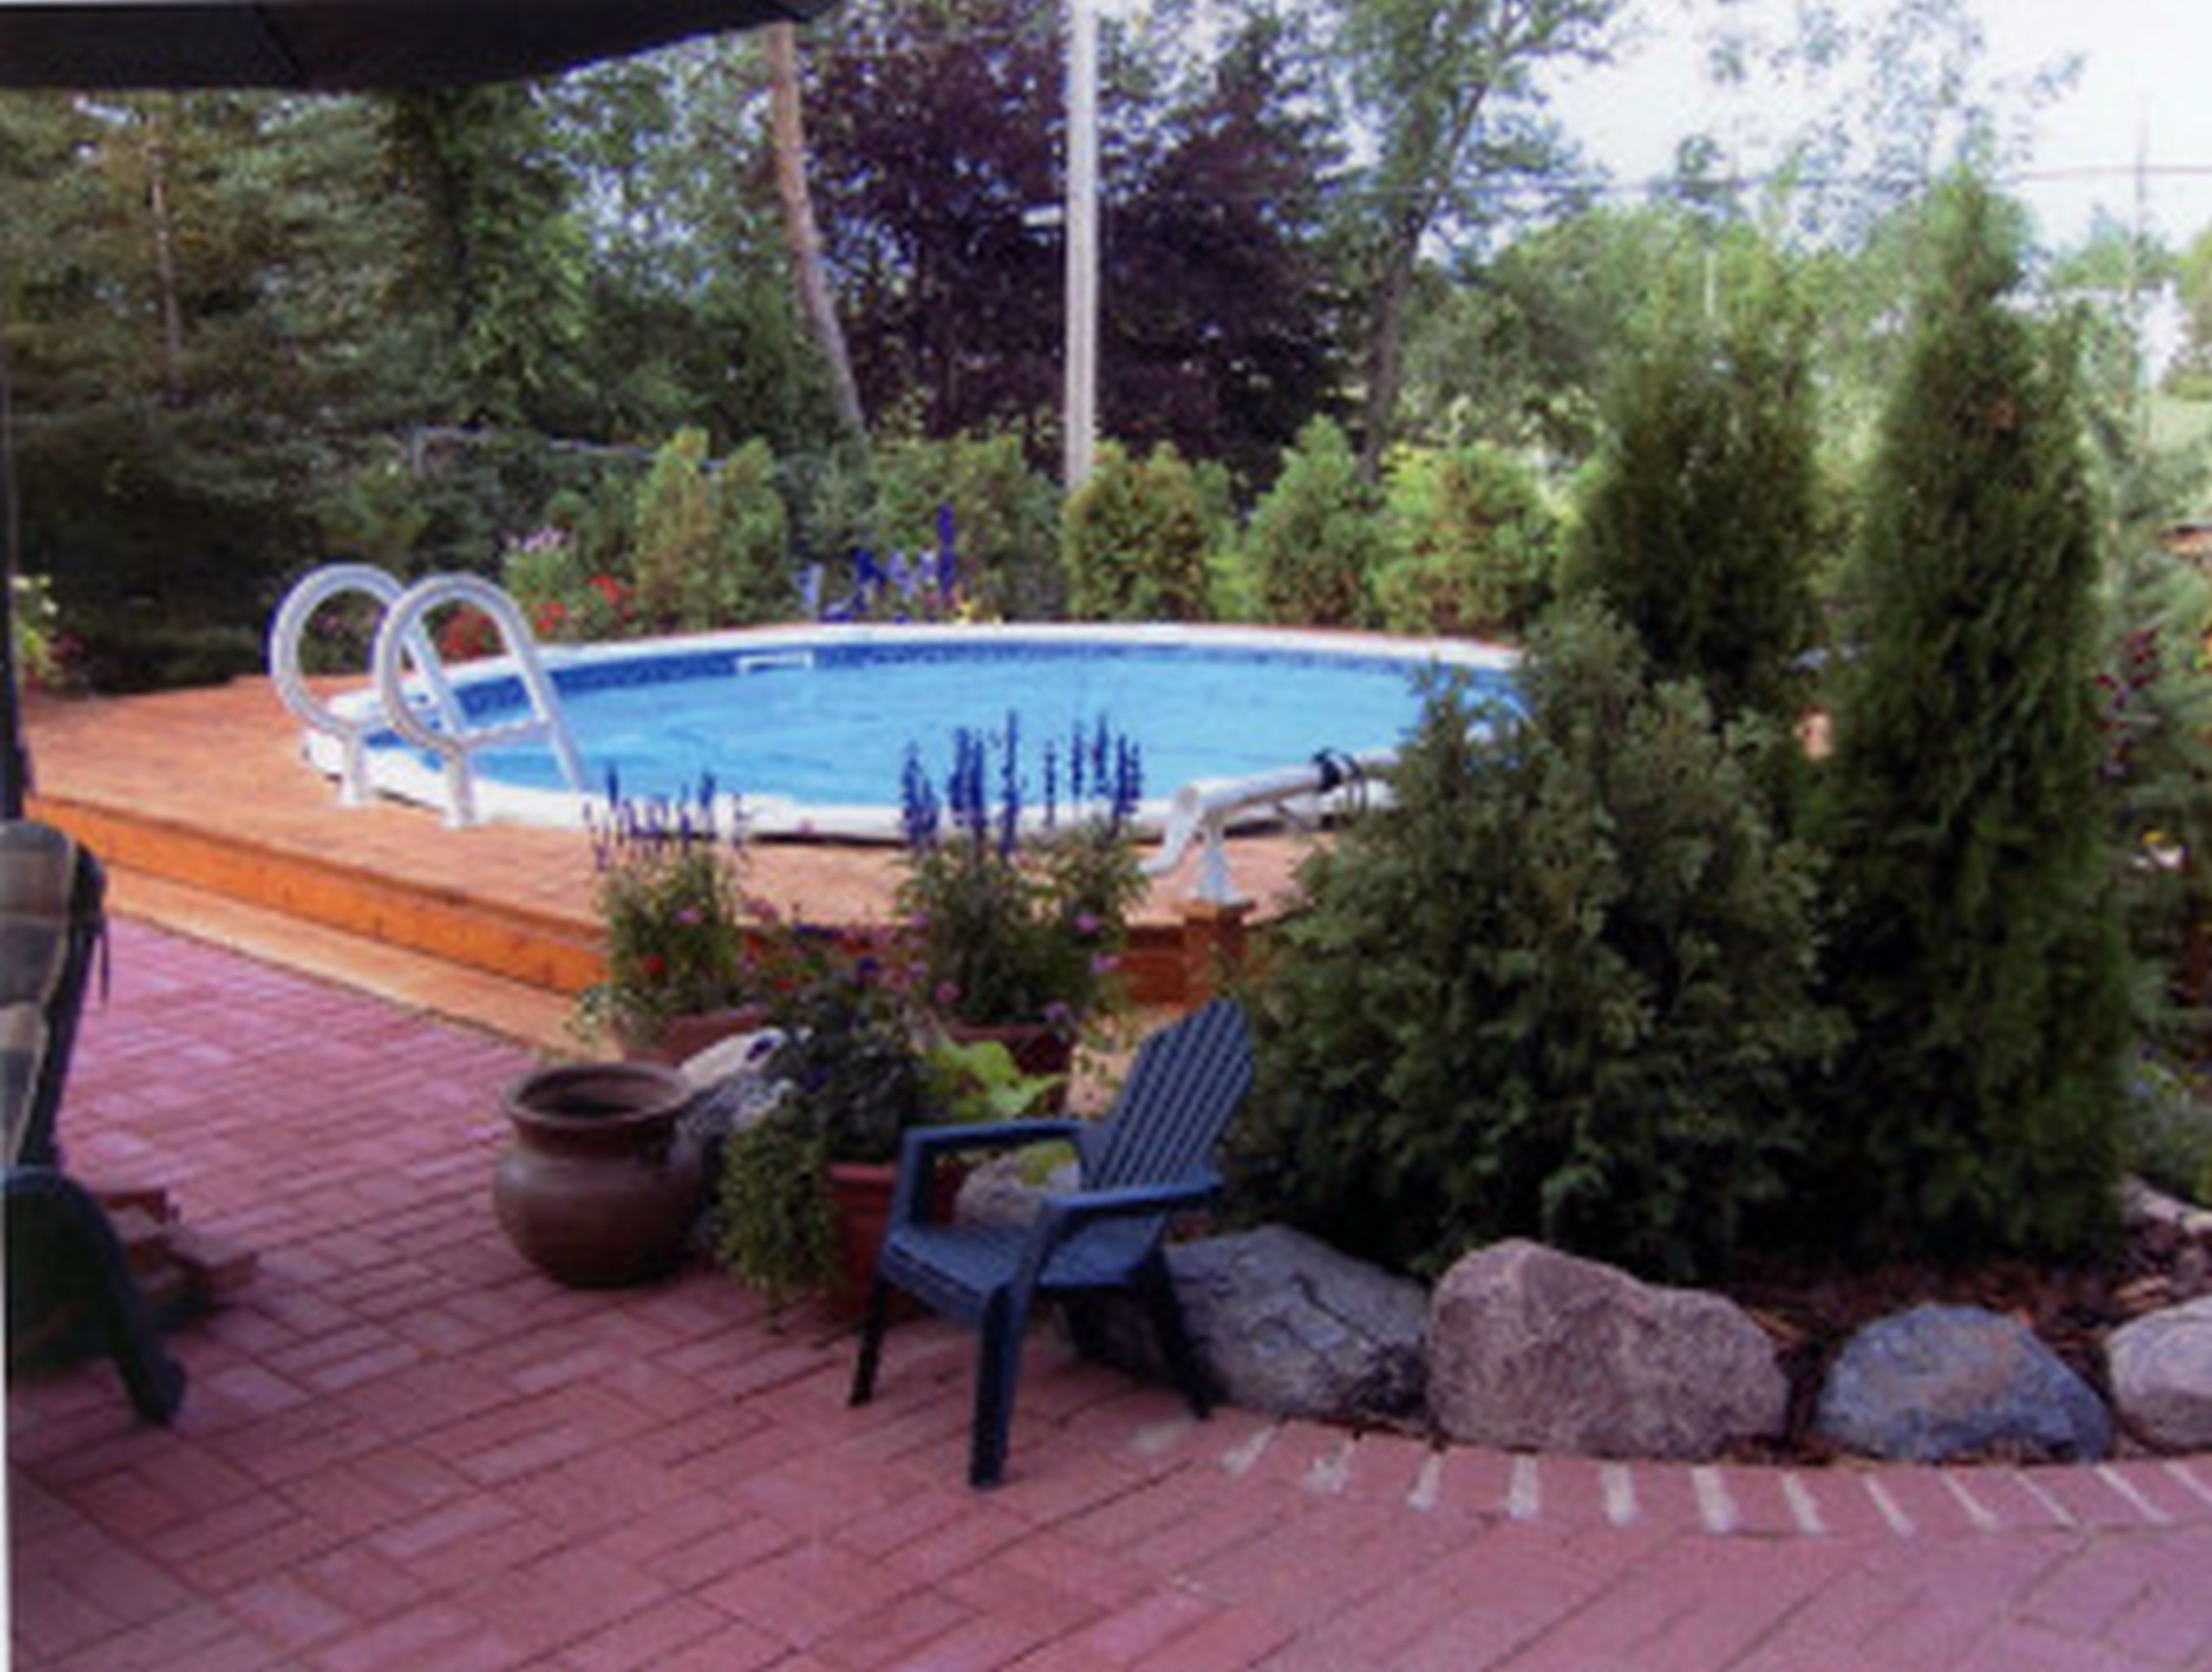 Above ground pool landscaping4 charming landscaping for Pool landscaping ideas on a budget